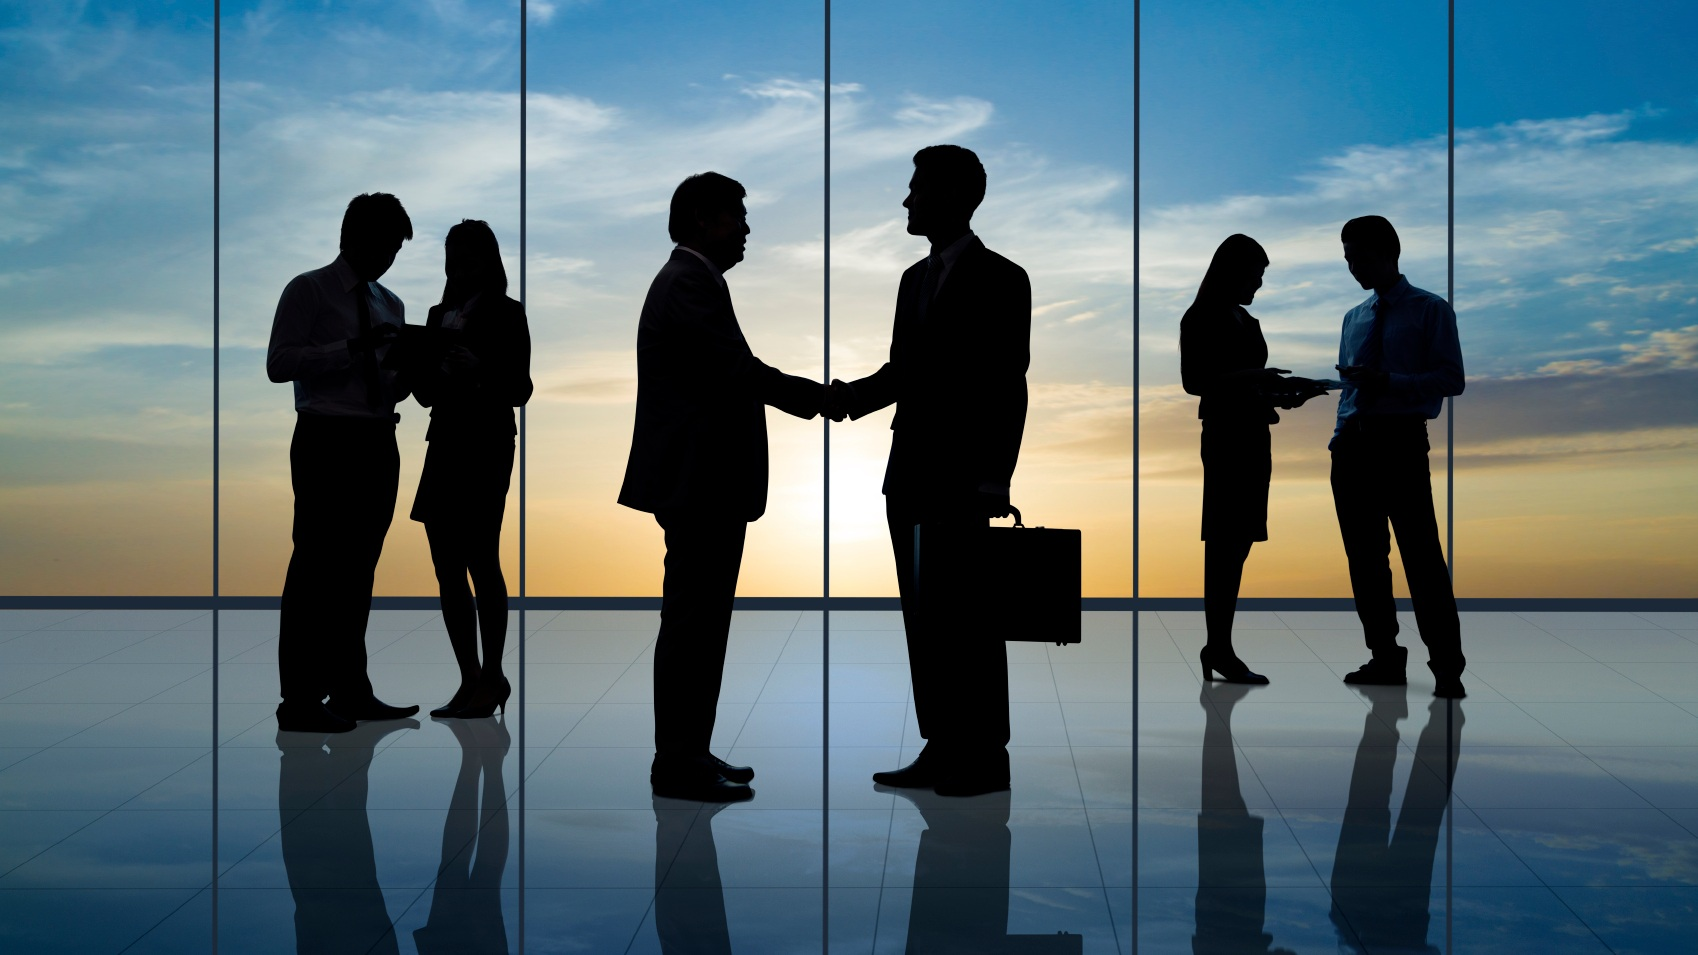 HOW TO GET MORE BUSINESS LEADS WITH JOINT VENTURE RELATIONSHIPS  by Jim Kaspari